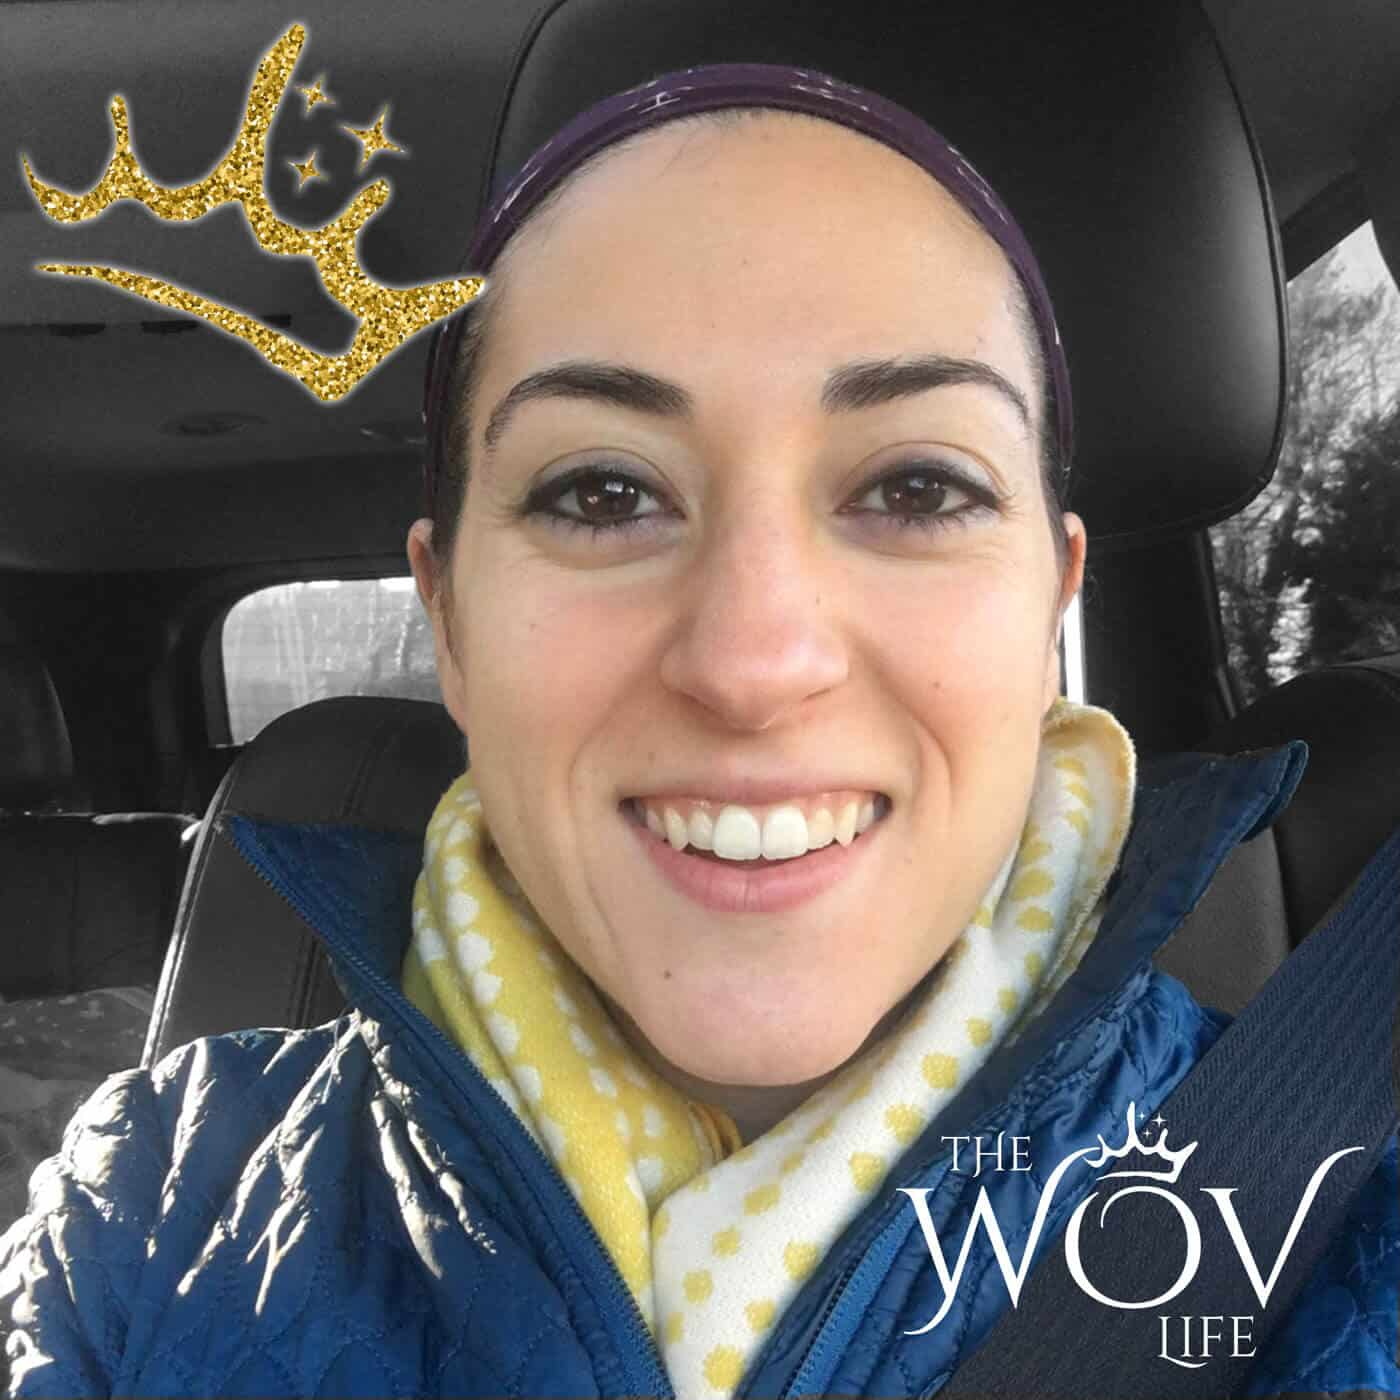 Ep. 019: More In The Store with Jill Dushey